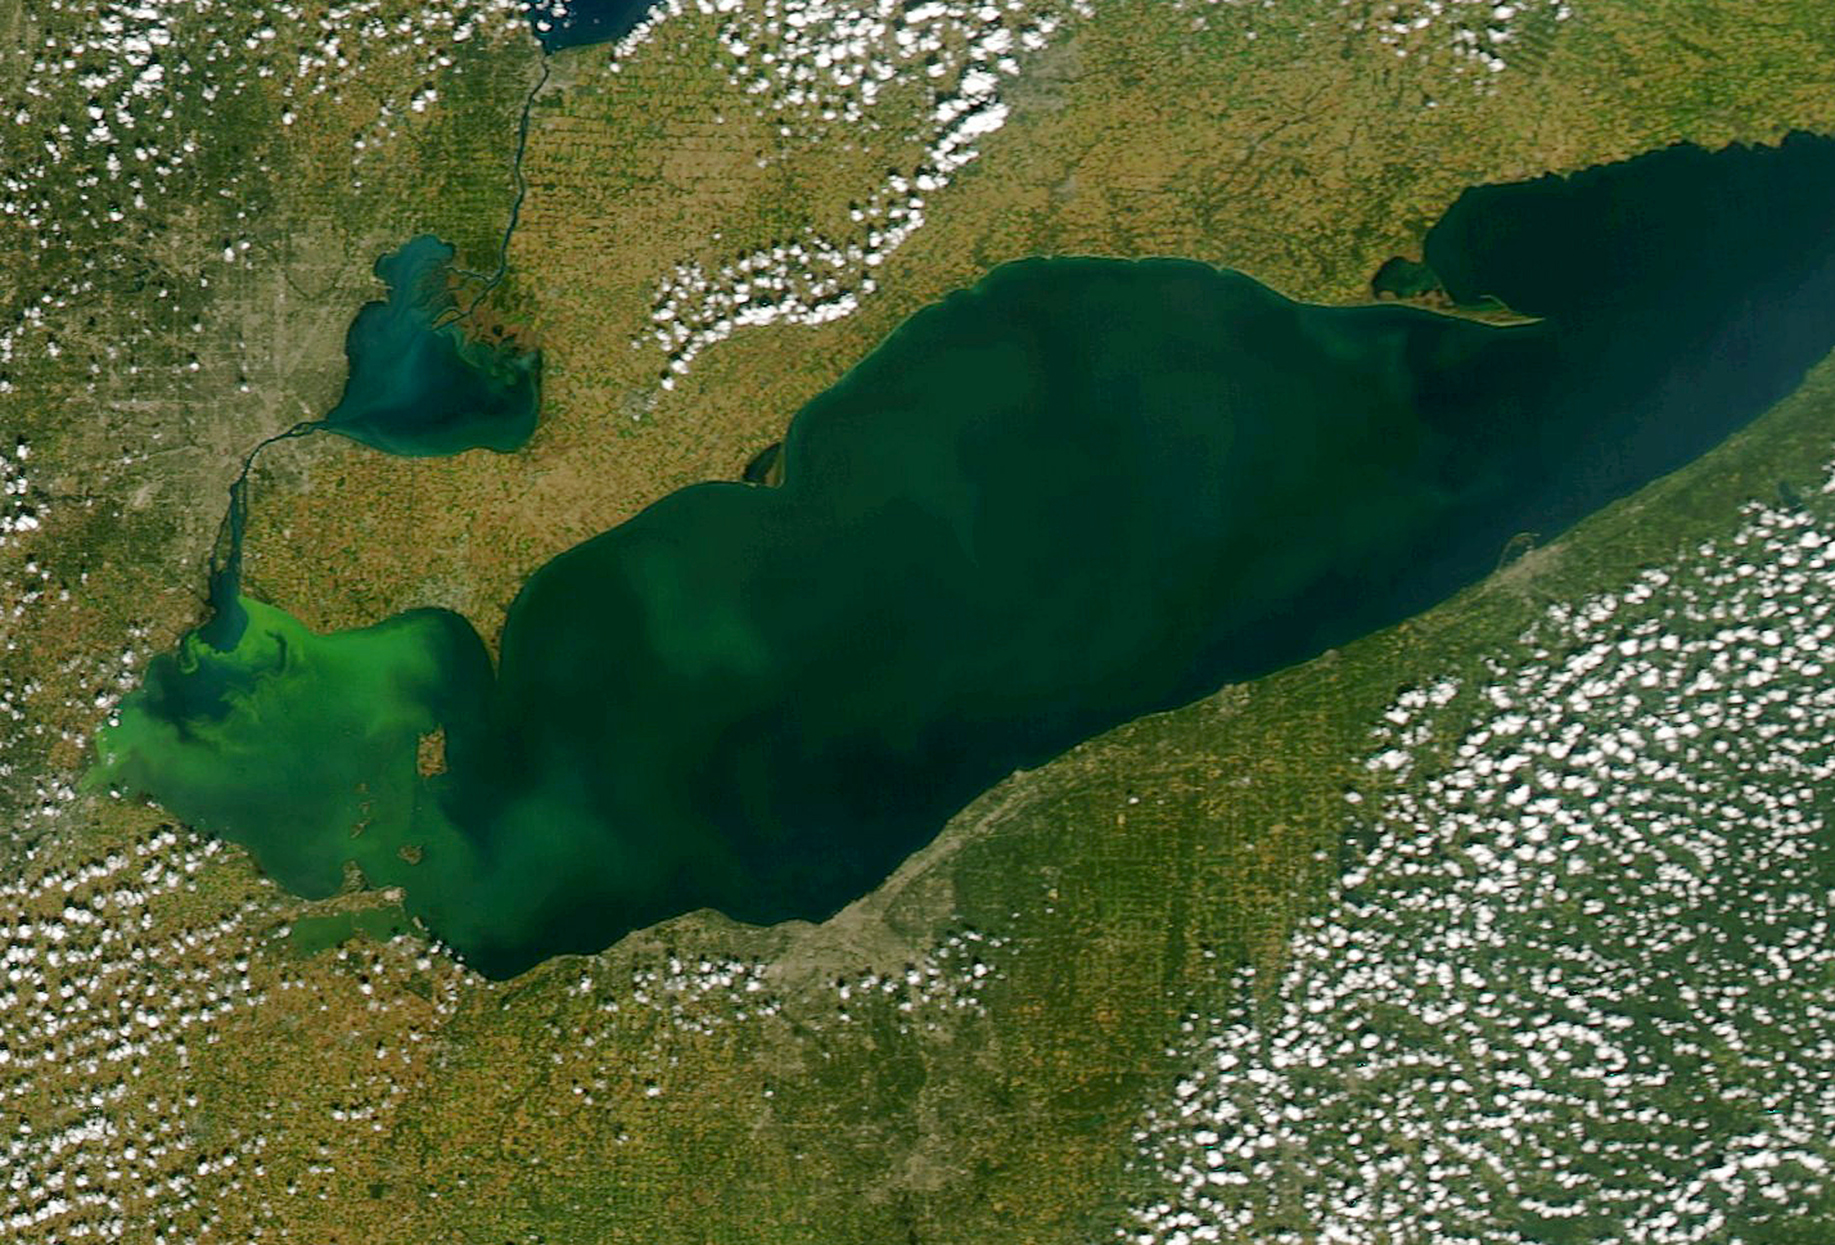 Algae Bloom Stretches To Canada But Toledo Water Safe To